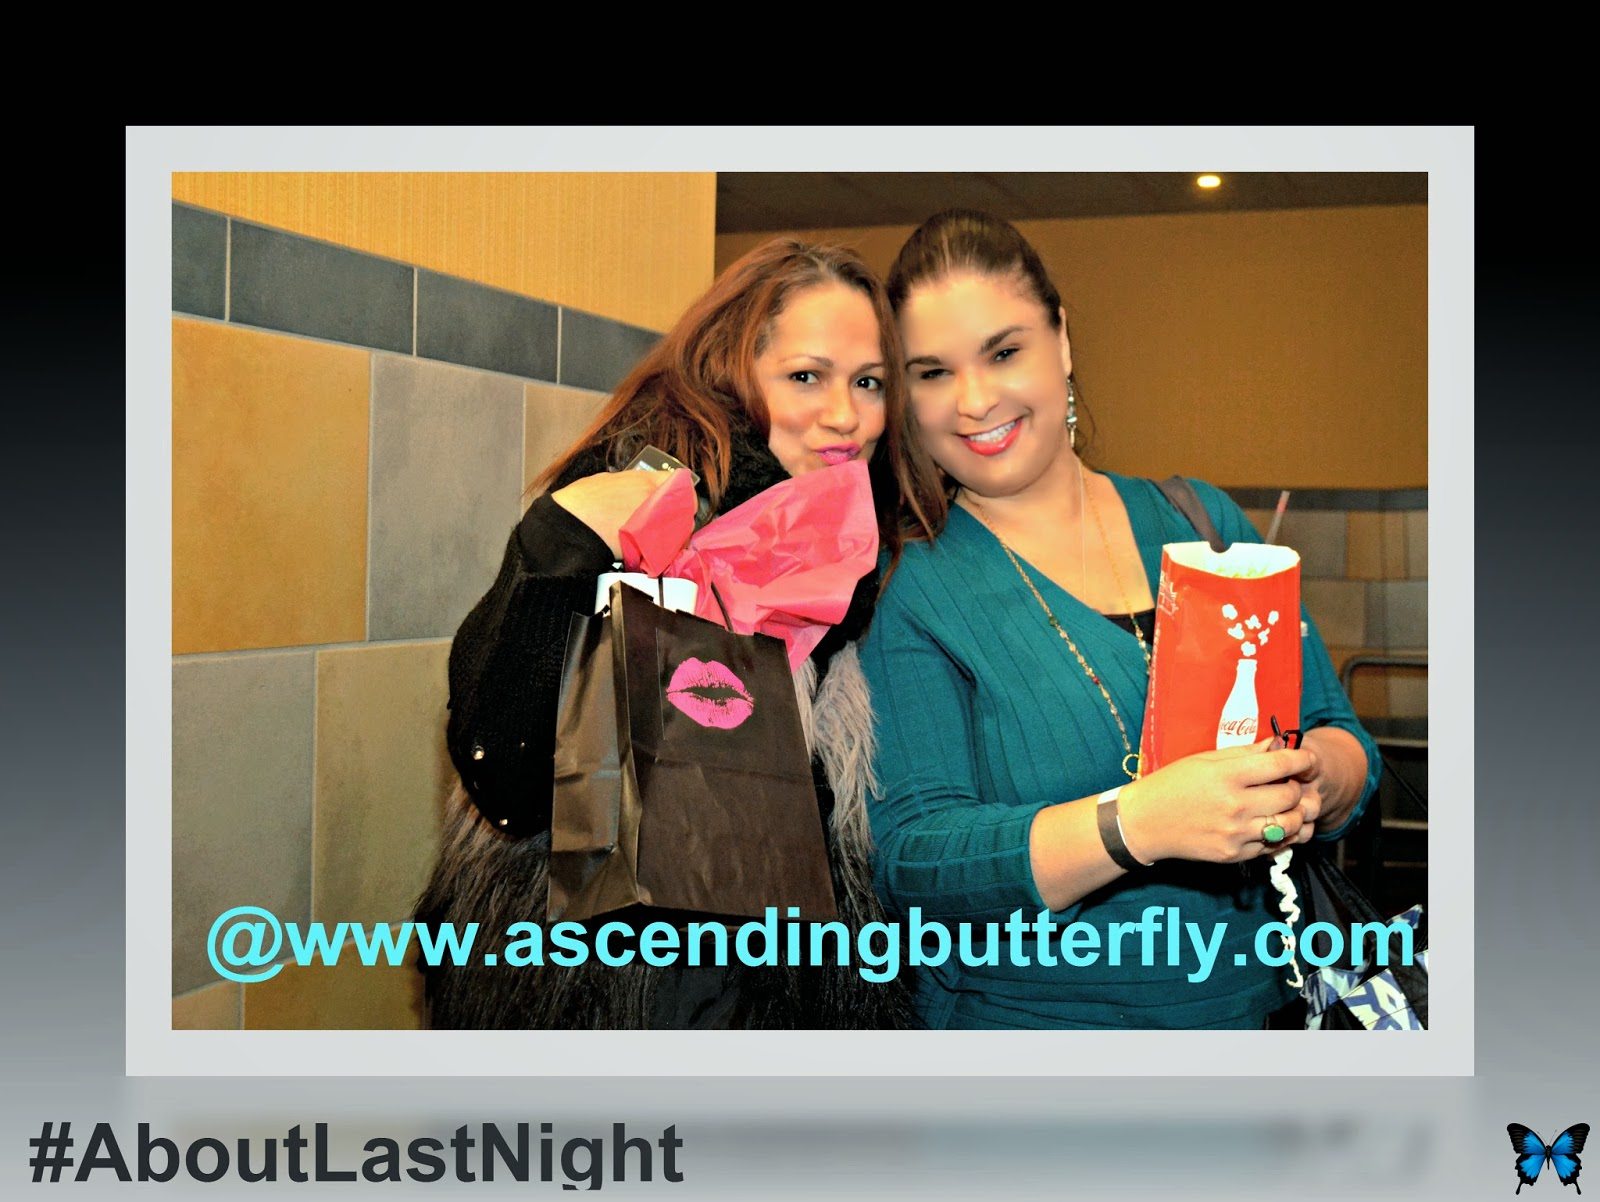 About Last Night, Sony Pictures, #AboutLastNight, Shop Addicts Advanced Screening